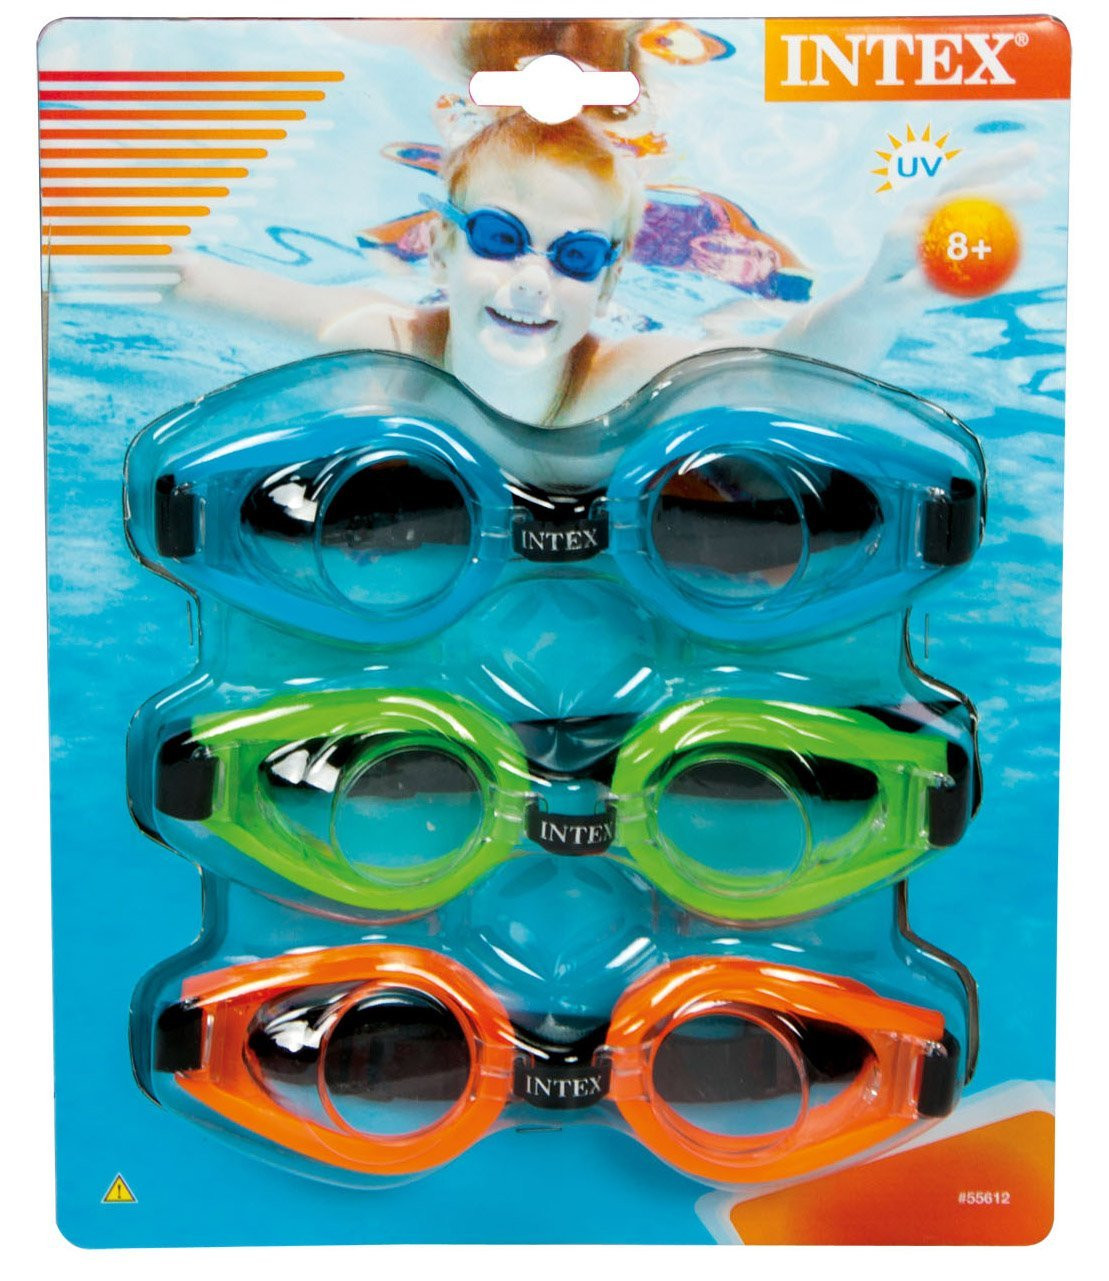 Intex Swimming Pool Kids Children Play Goggles Multicolored Tri-Pack | 55612 by Intex